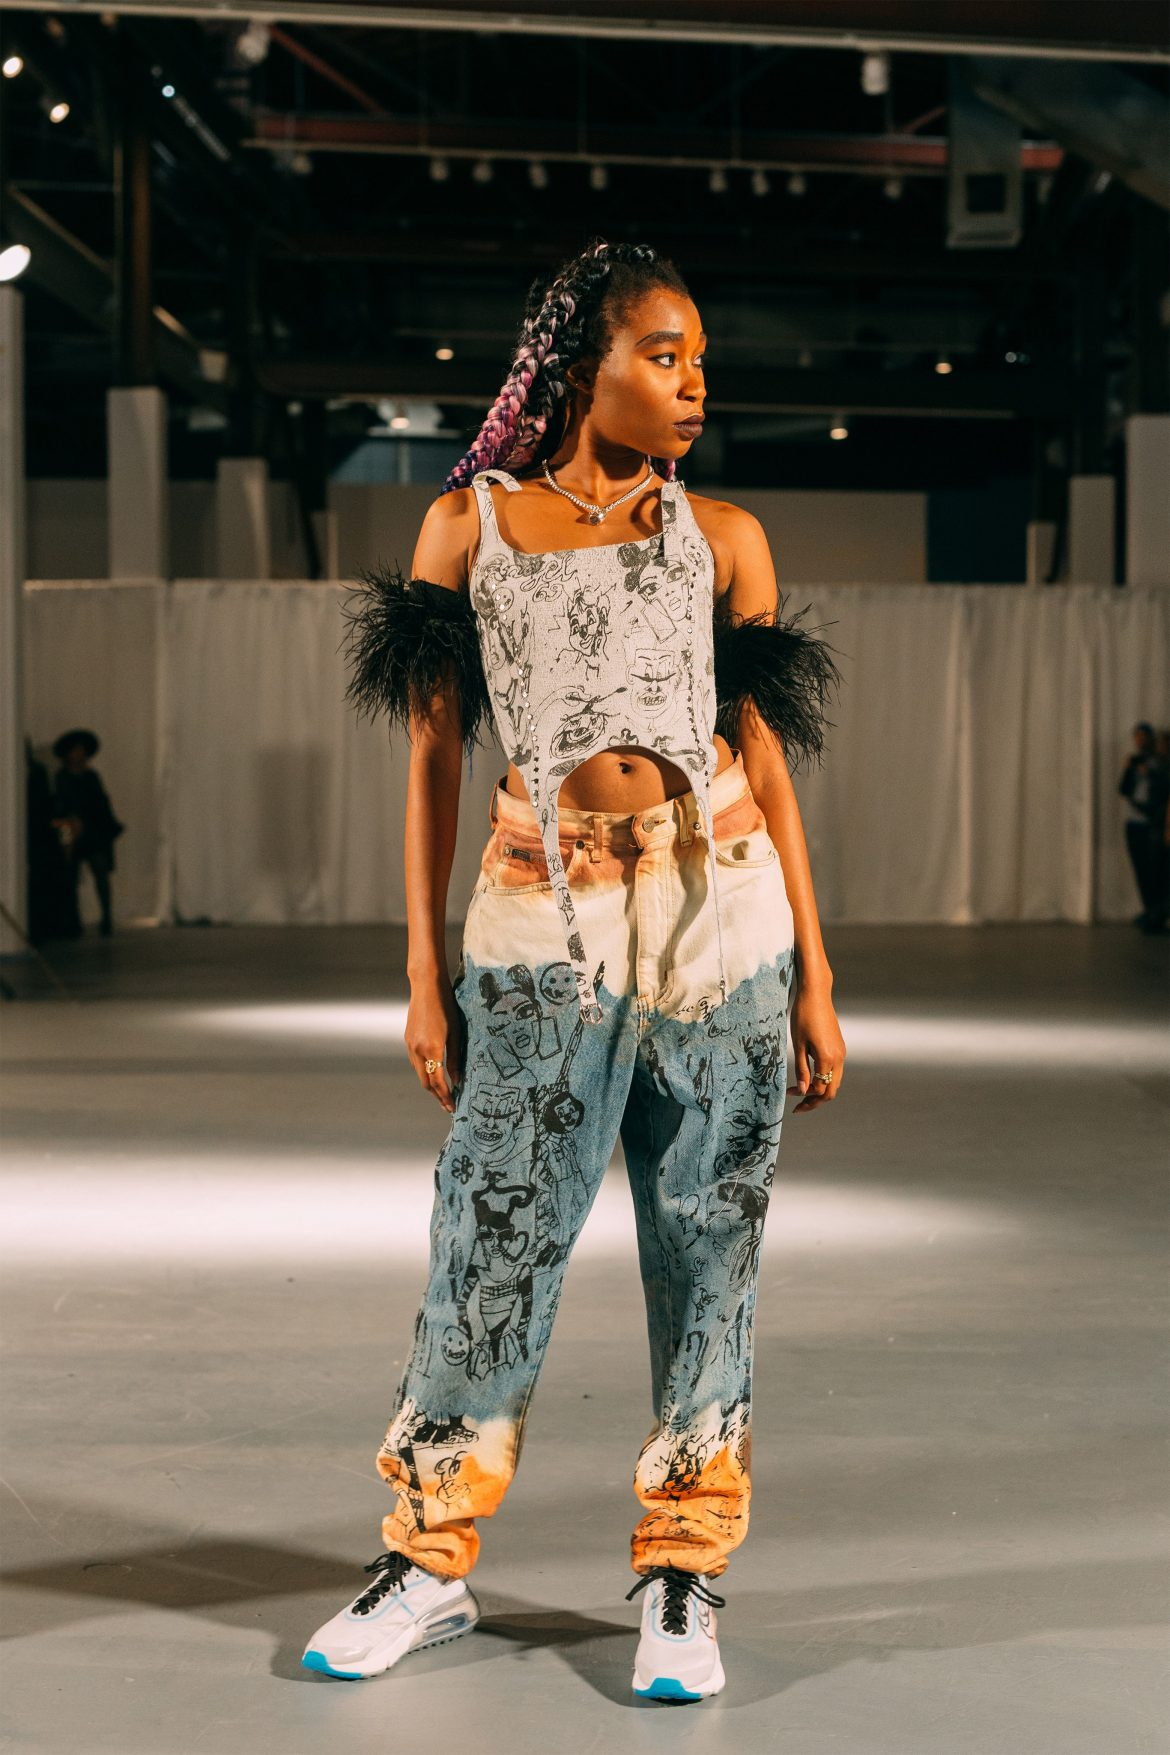 Top 5 Trans Fashion Designers That Will Blow Your Mind